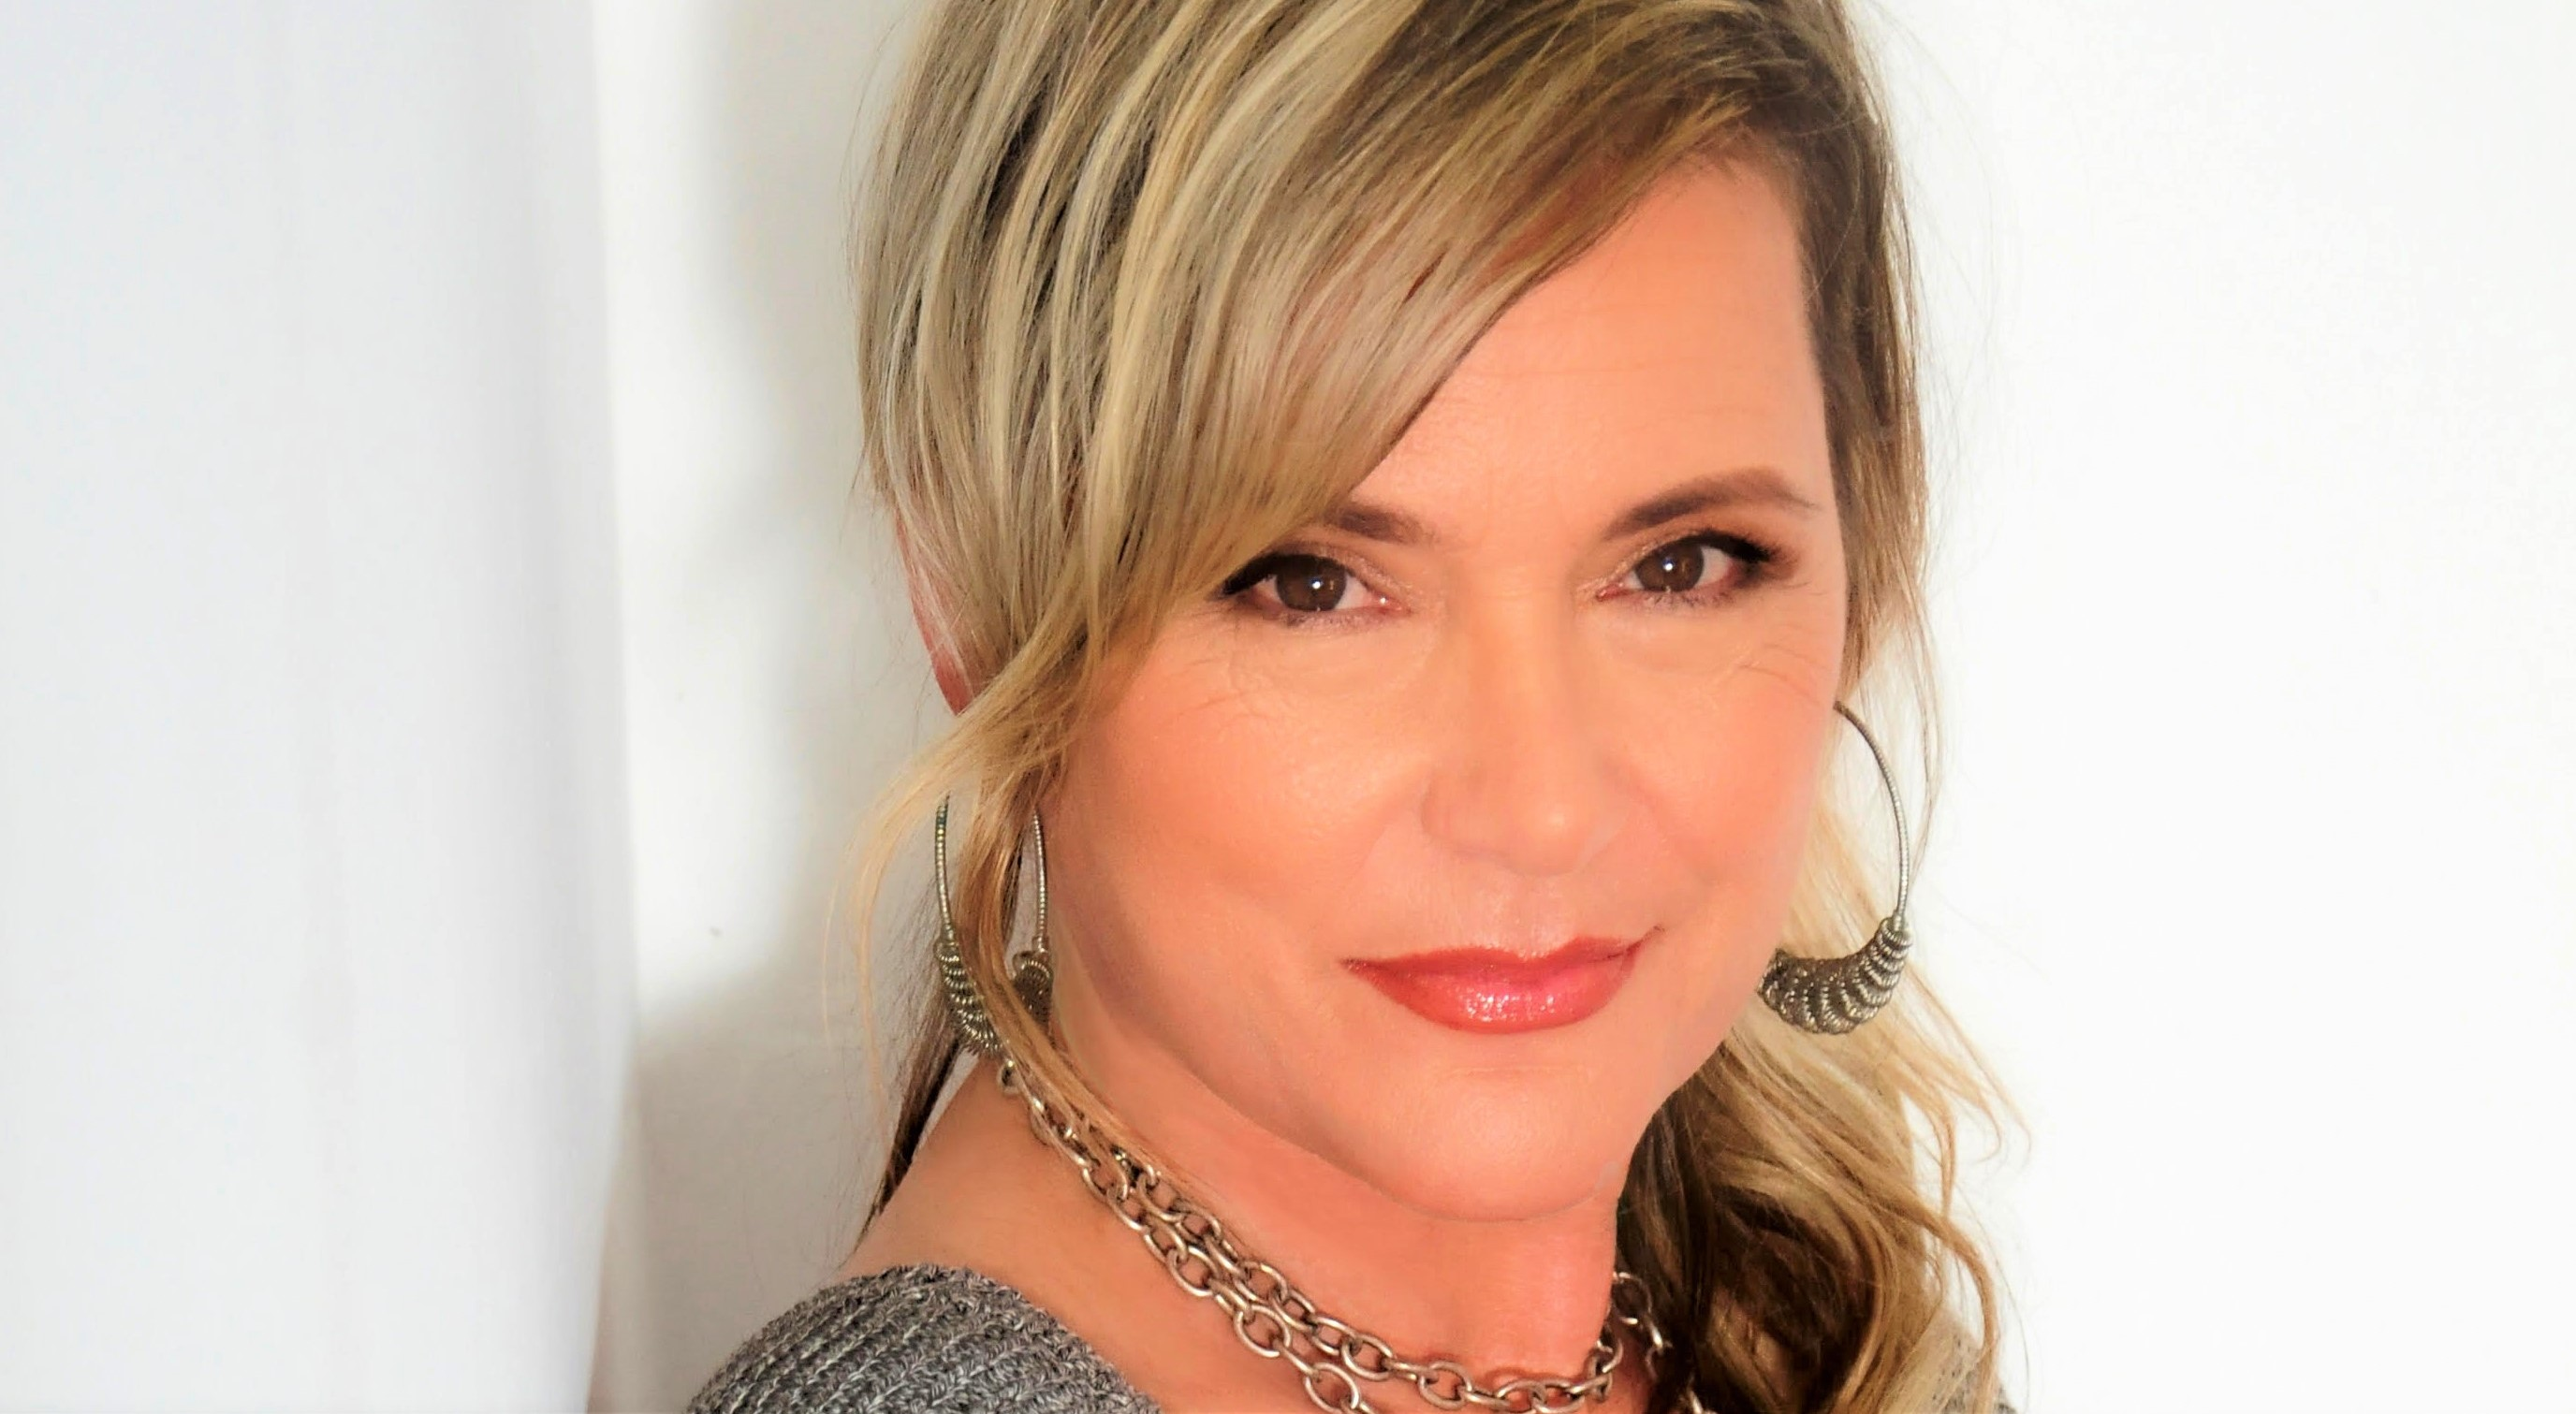 Interview with the actress Dedee Pfeiffer, 'Big Sky' is the new tv series